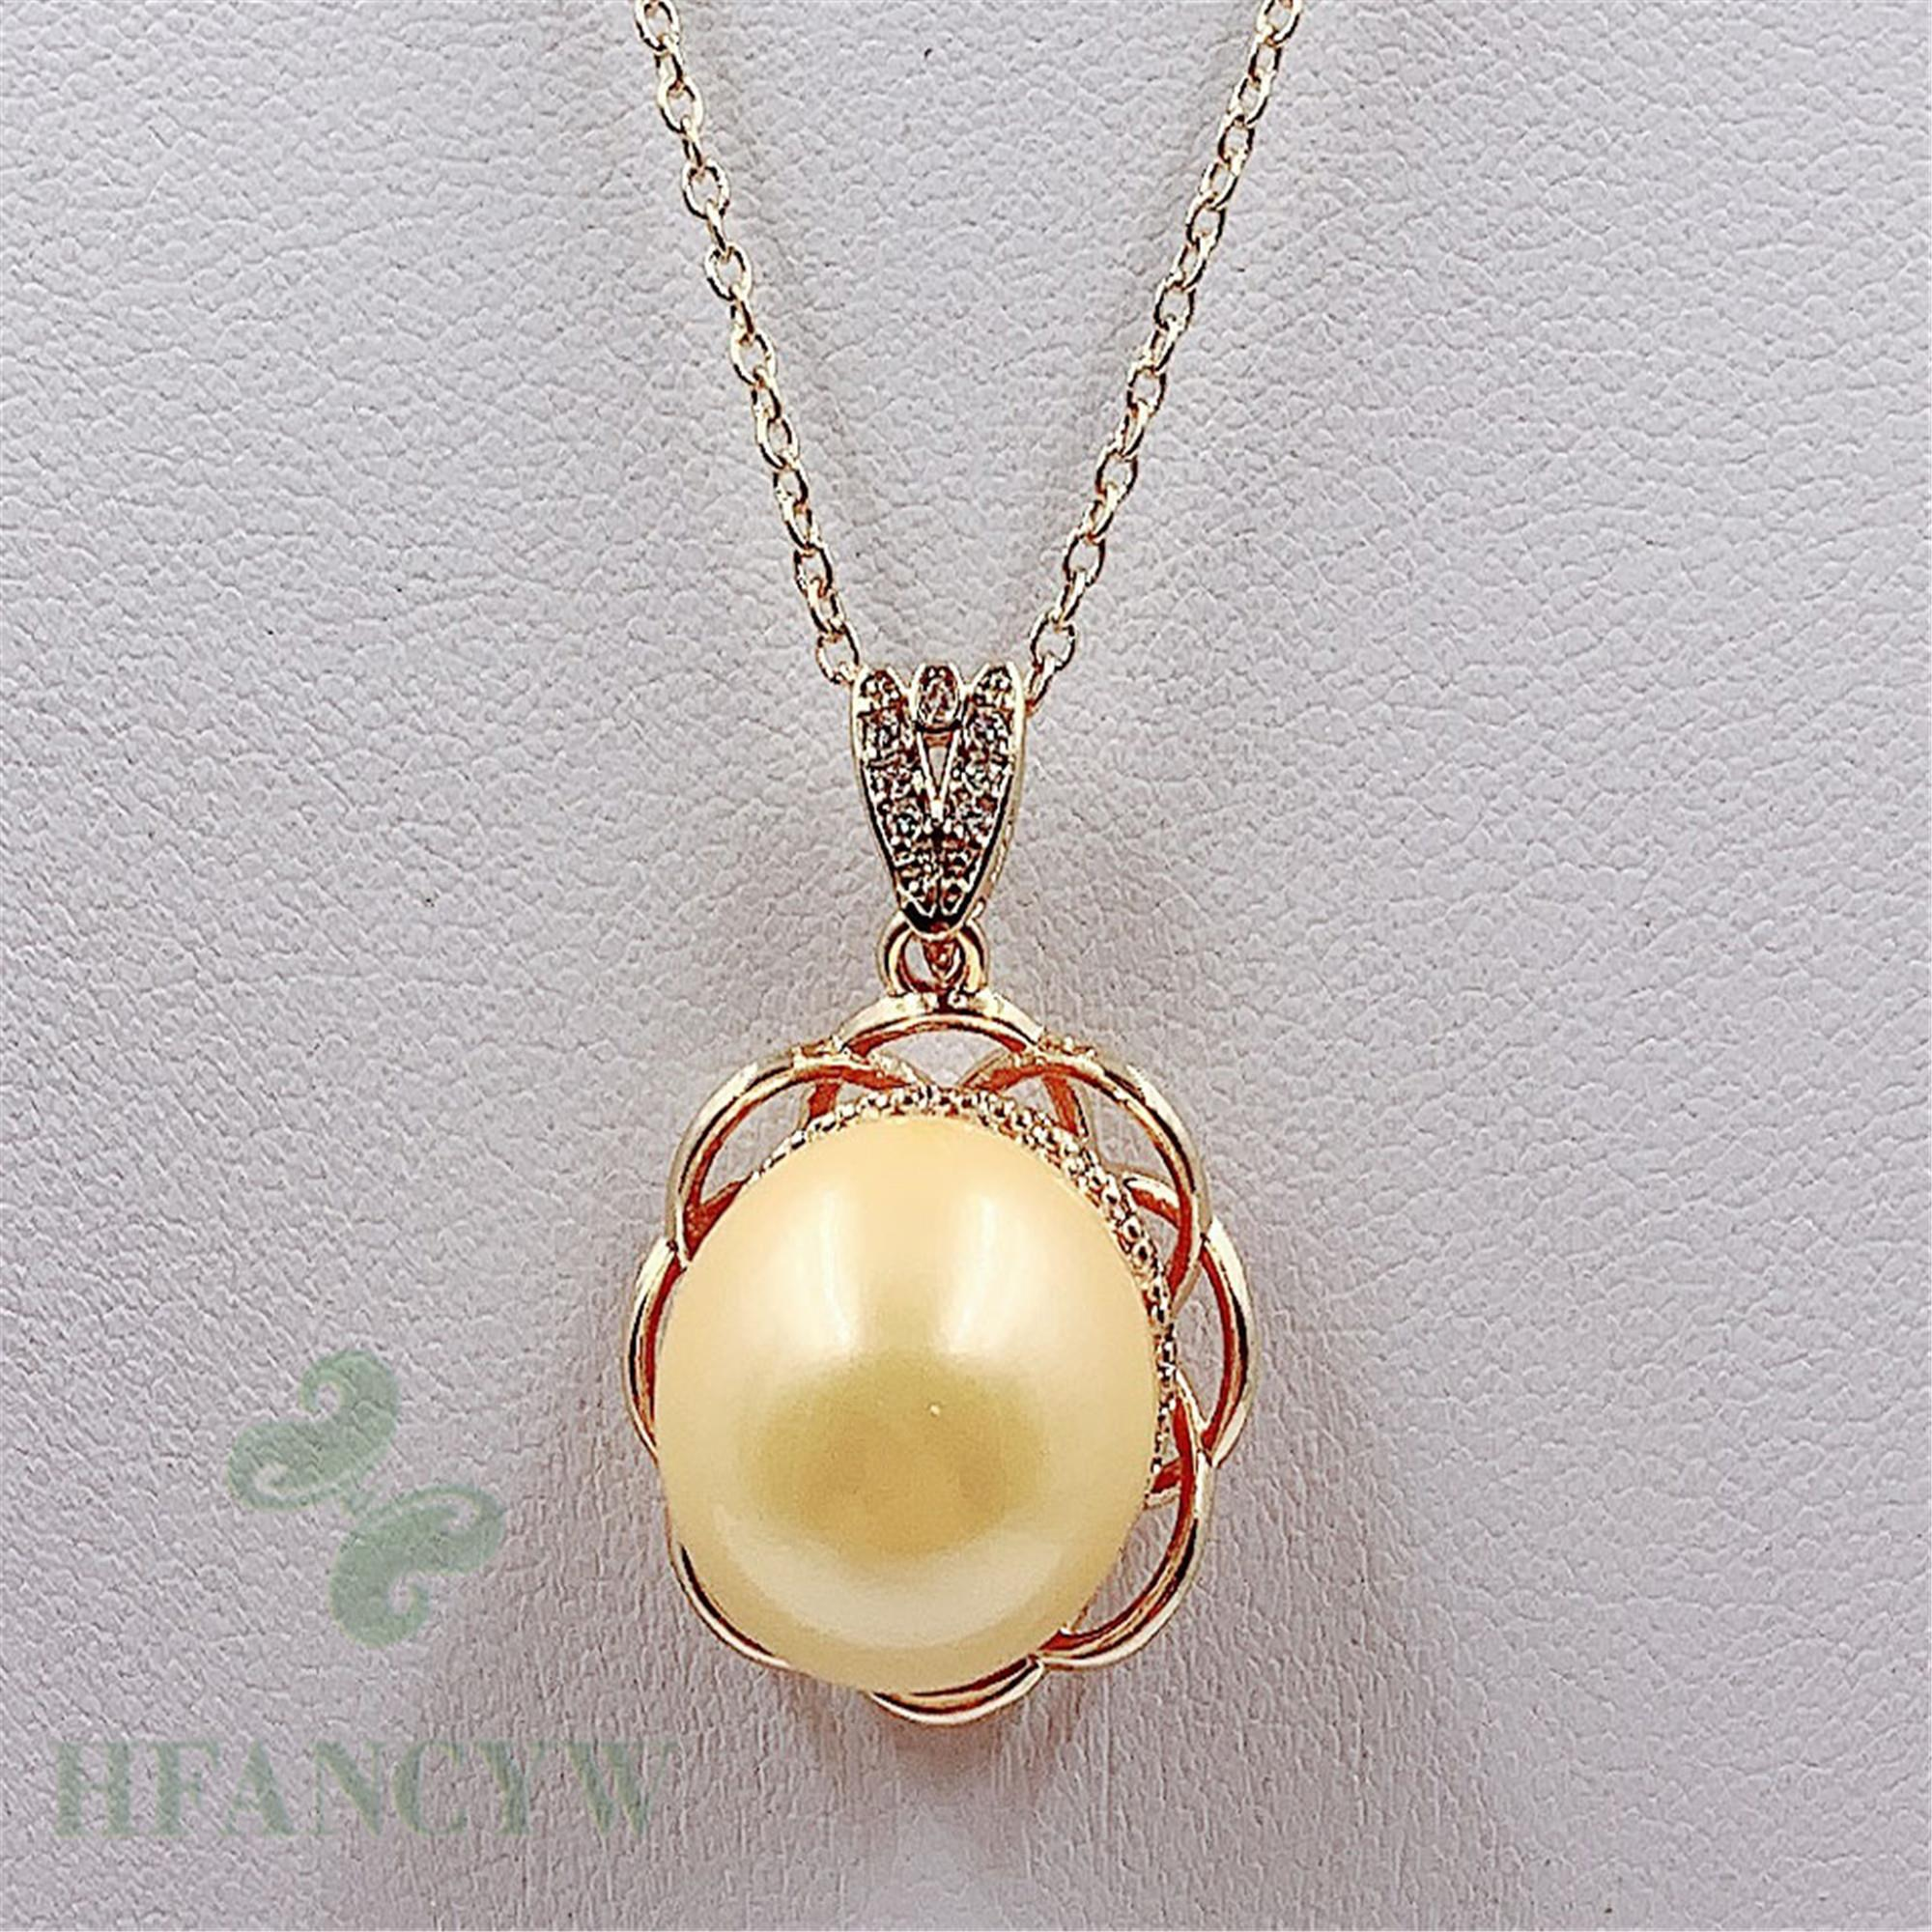 15-16mm White Baroque Pearl Pendant Without Defect No Repair light holiday